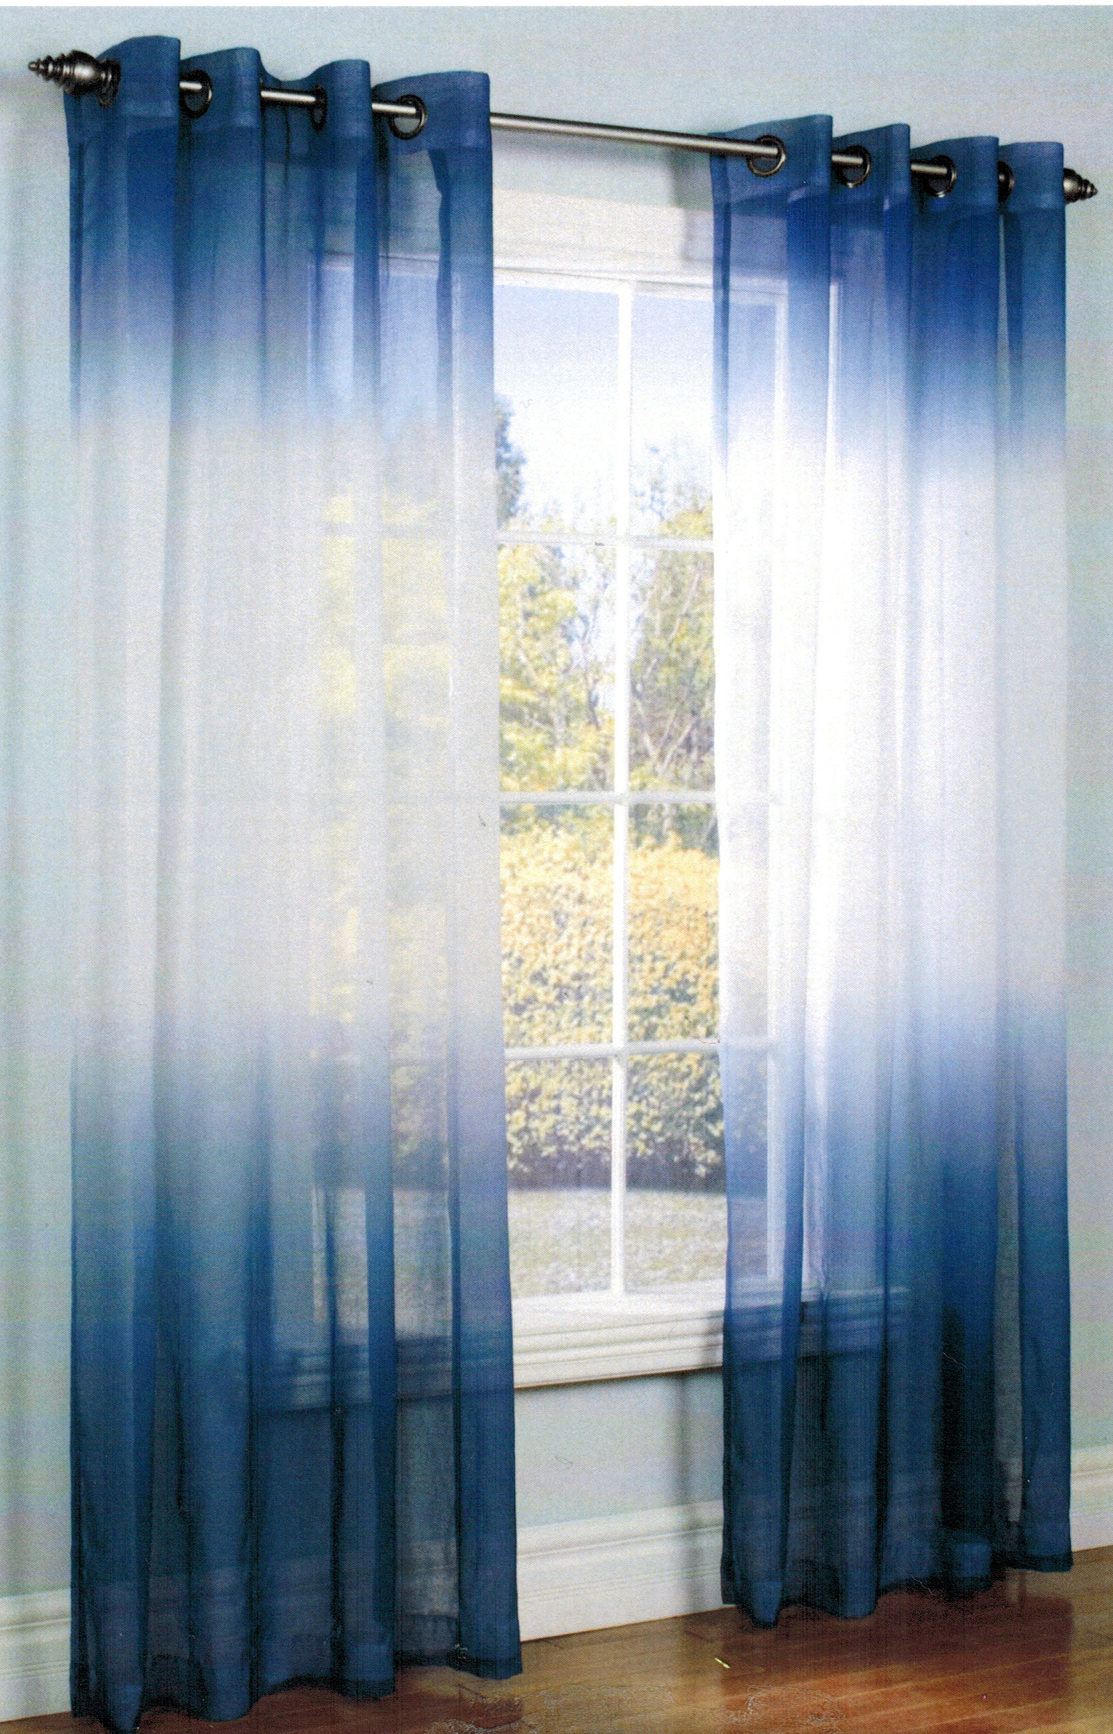 Sheer Window Curtains -TheCurtainShop.com